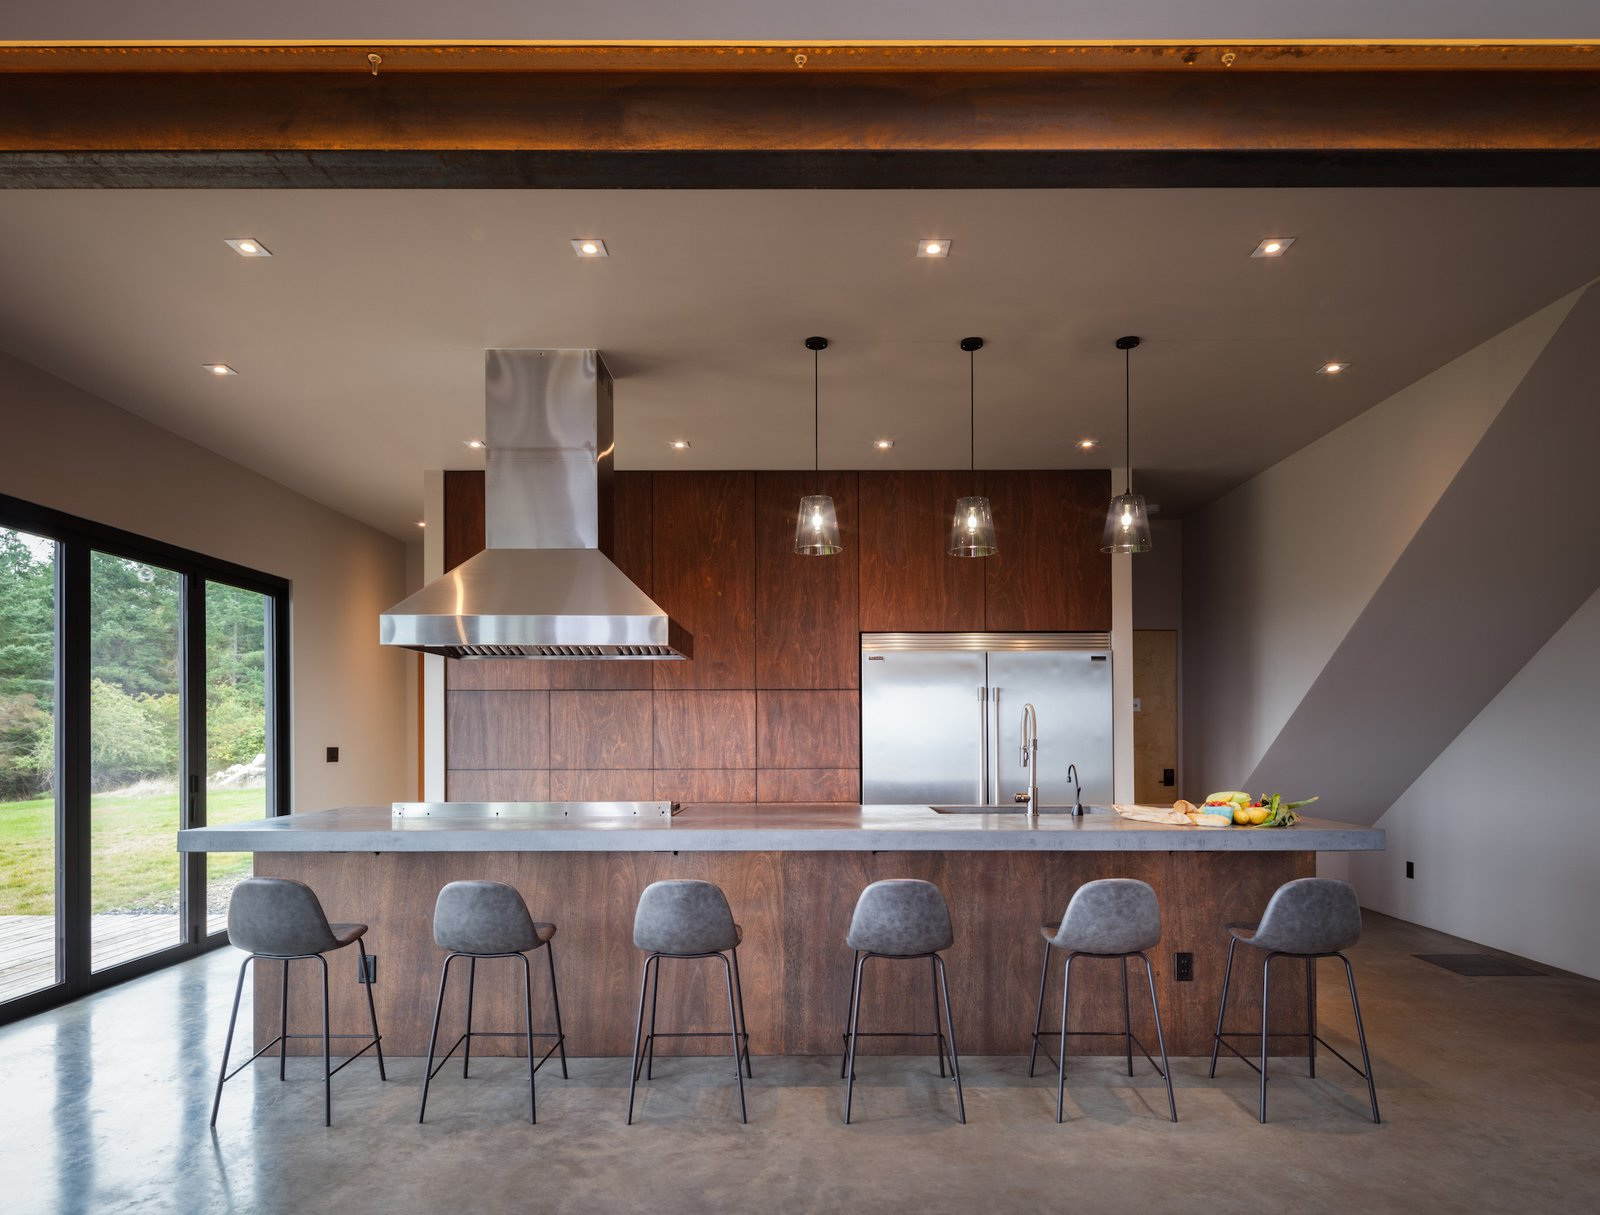 Communal kitchen of Saltwater Farm main house by RAD LAB.